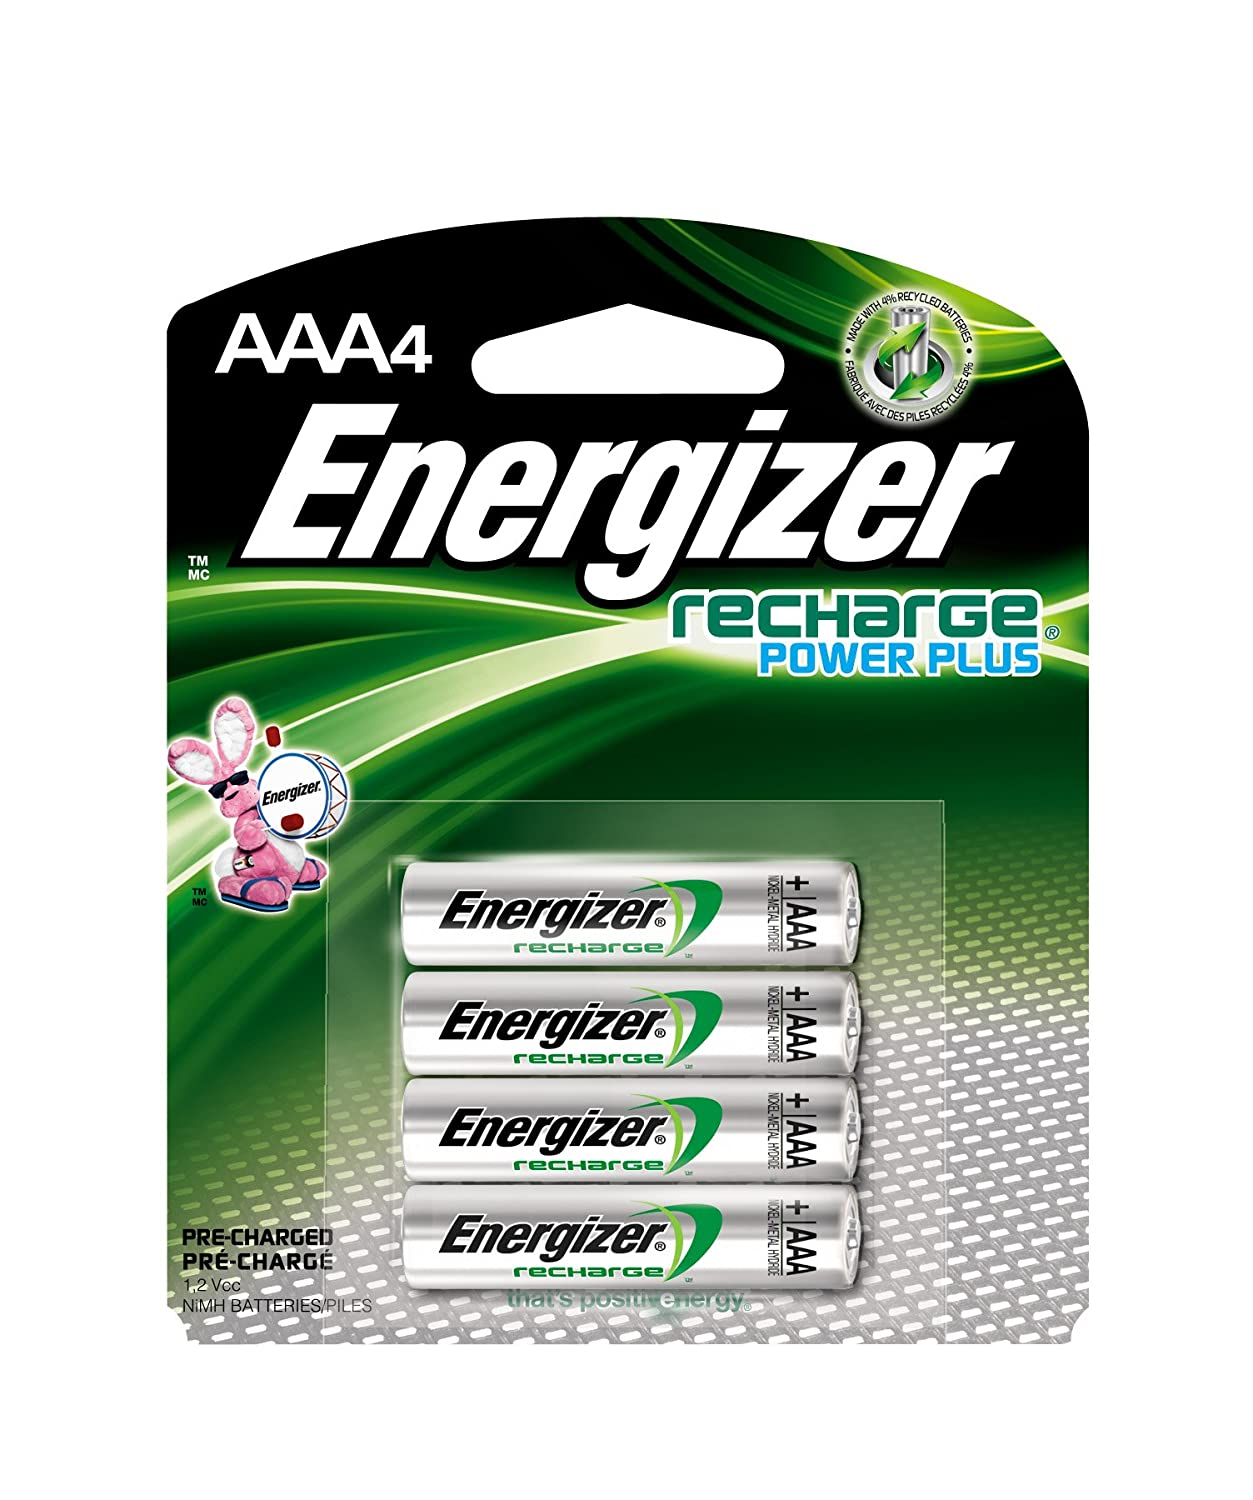 Energizer Recharge Power Plus AA 2300 mAh Rechargeable Batteries, Pre-Charged, 8 count NH15BP-8